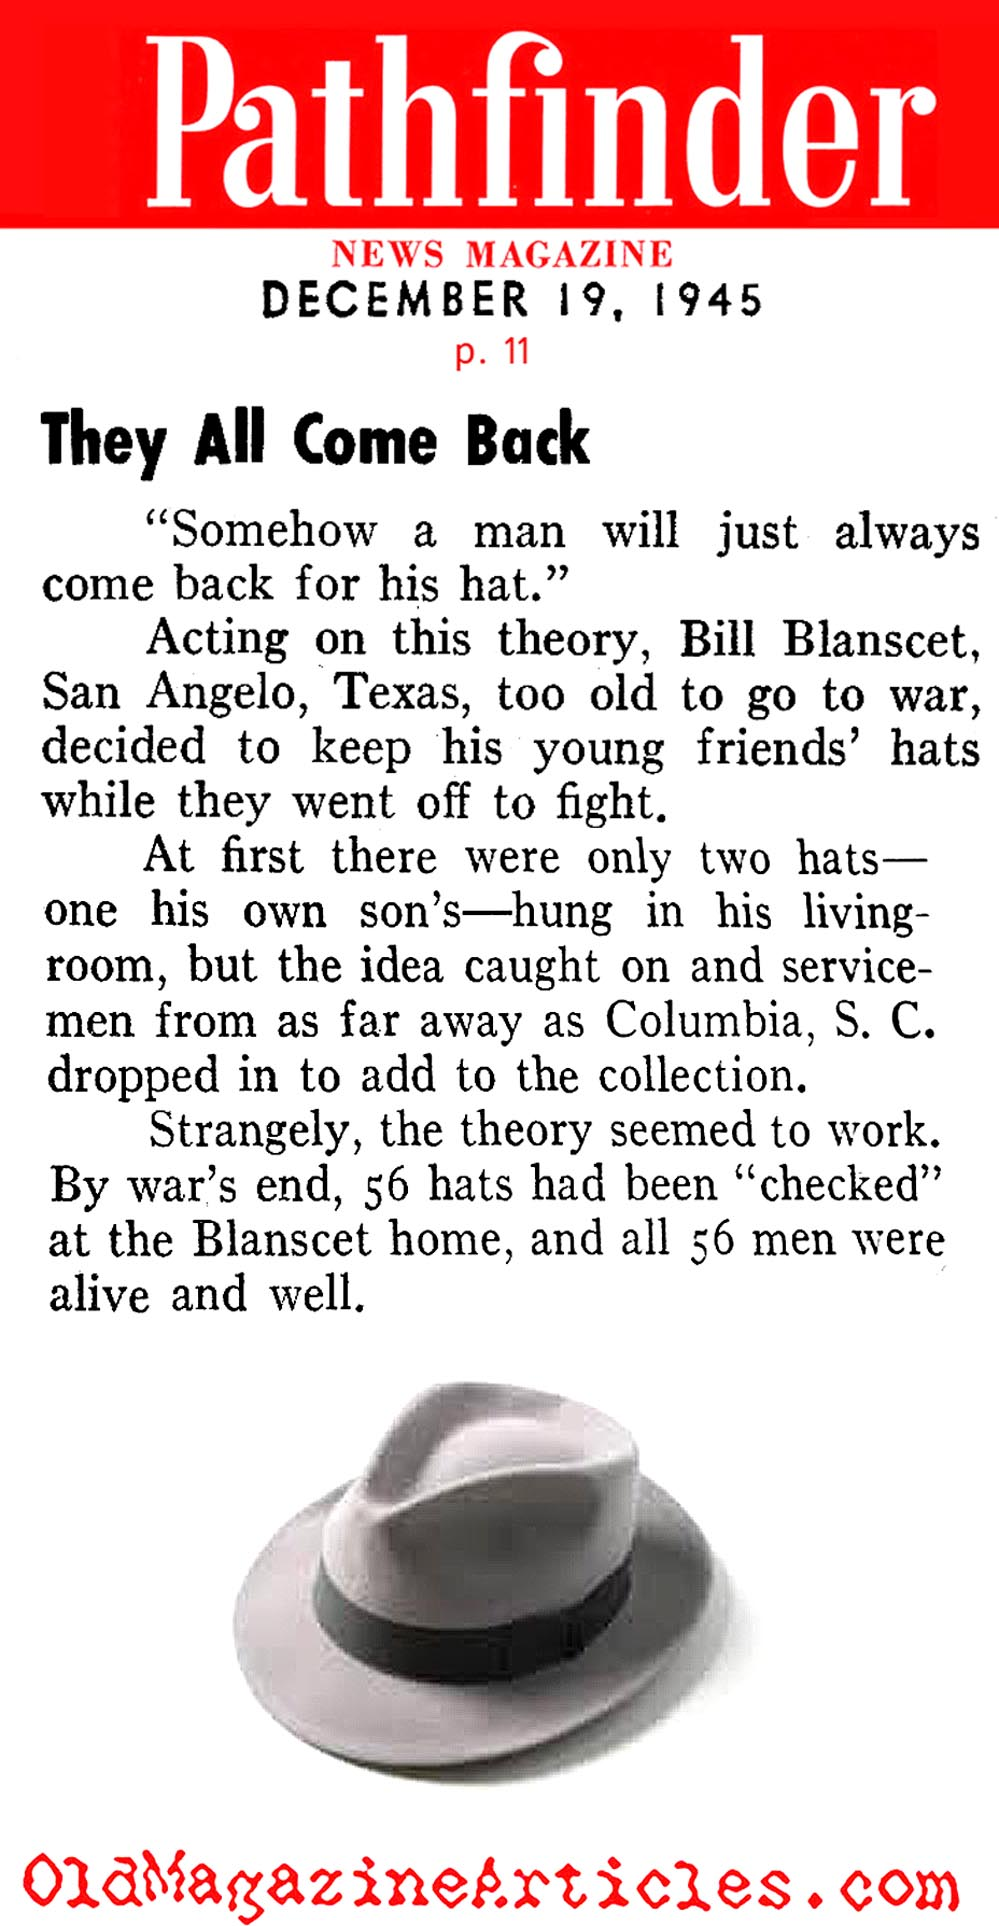 The Hat Superstition that was Reliable... (Pathfinder Magazine, 1945)